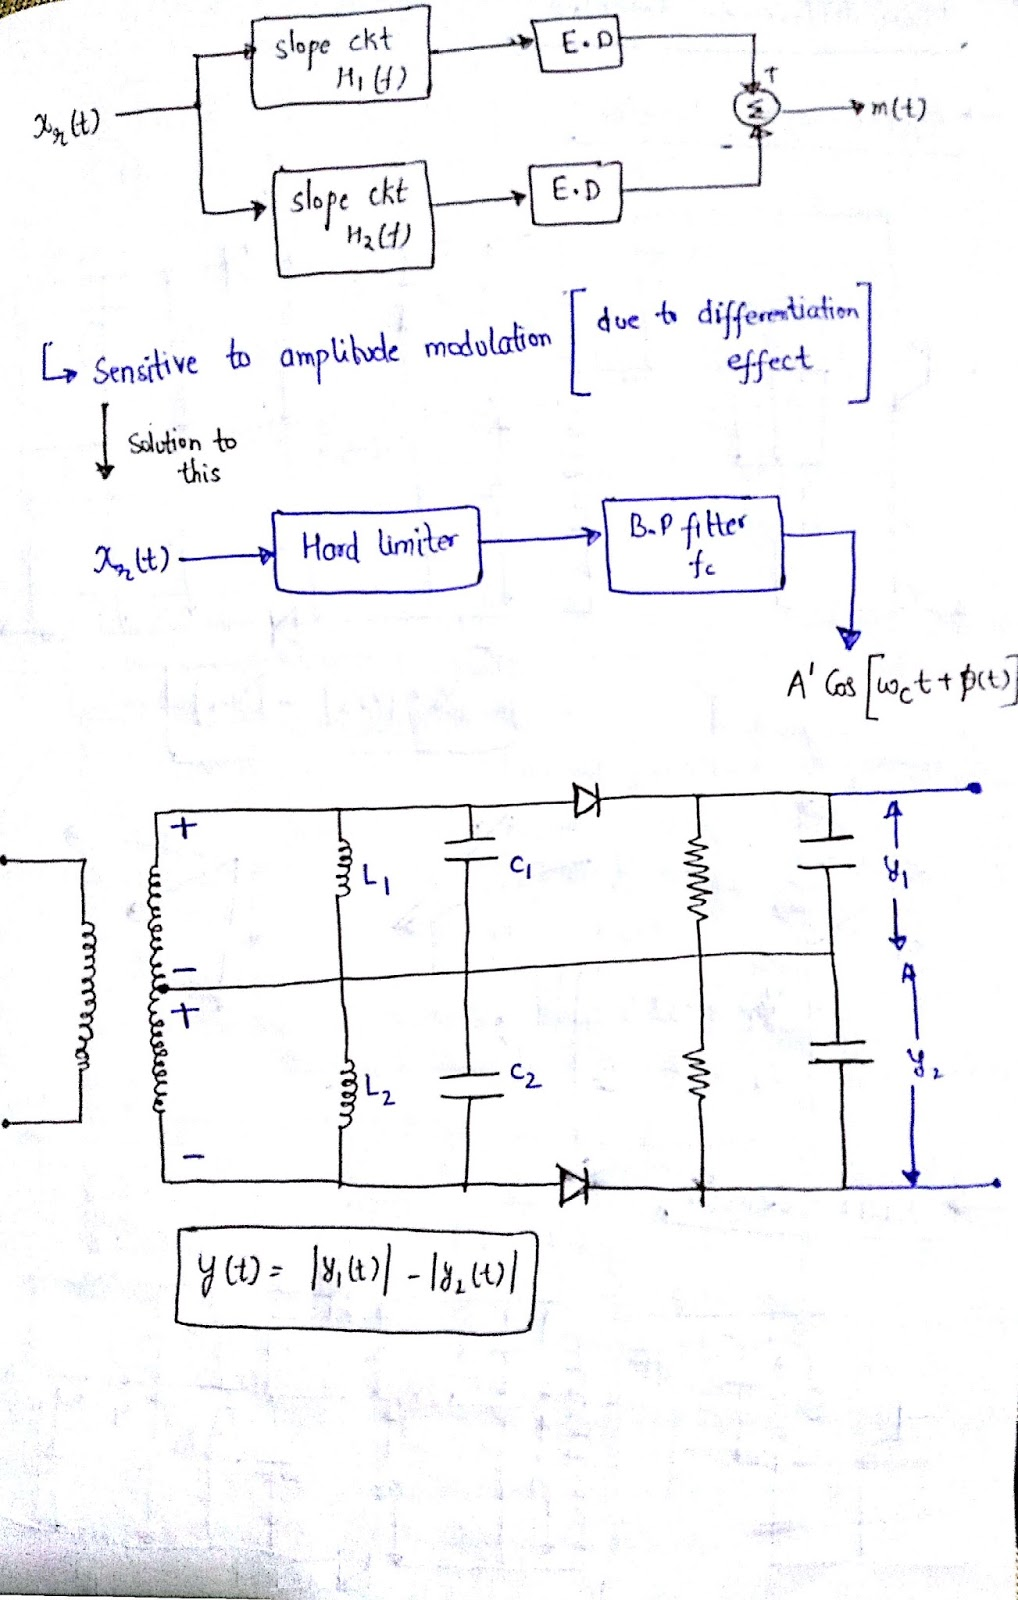 Angle Modulation Techniques And Fm Receivers Ece 3001 Am Modulator Circuit Pulse Schemes Pam Ppm Pwm Generation Detection Code Conversion Of To Multiplexing Fdm Tdm